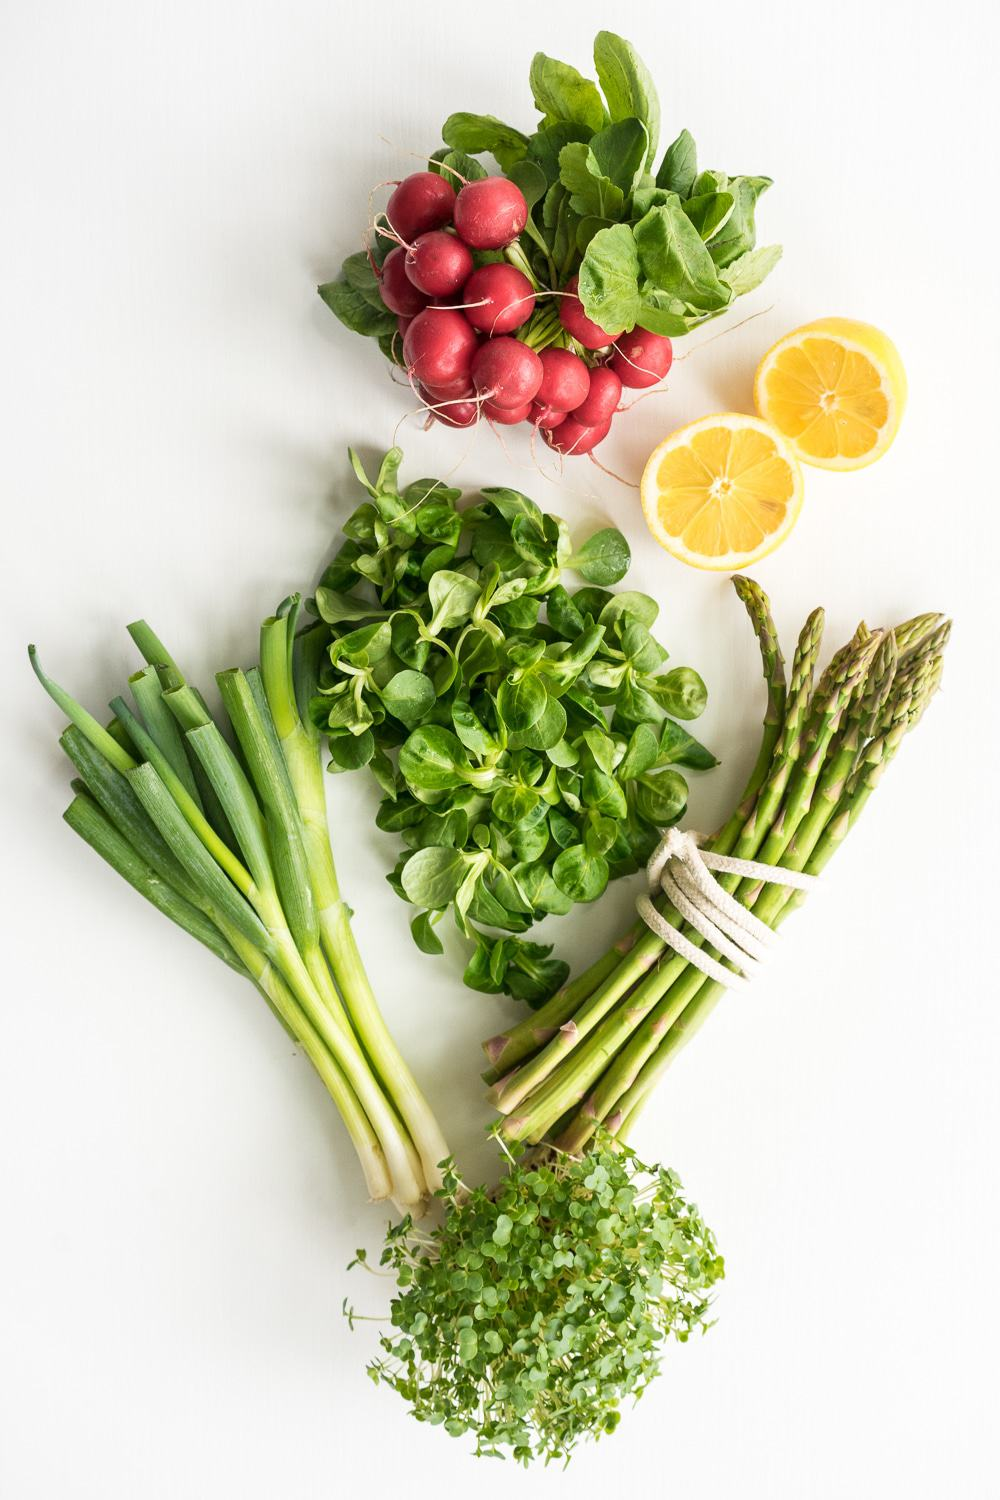 Wonderful ingredients: A super spring salad recipe that is bursting with fresh ingredients, perfect to brighten up your day! Fresh radish, tender mache salad (lamb's lettuce), spring onions and asparagus make an absolutely delicious salad, fantastic on its own for a very light lunch or as a side dish for dinner!